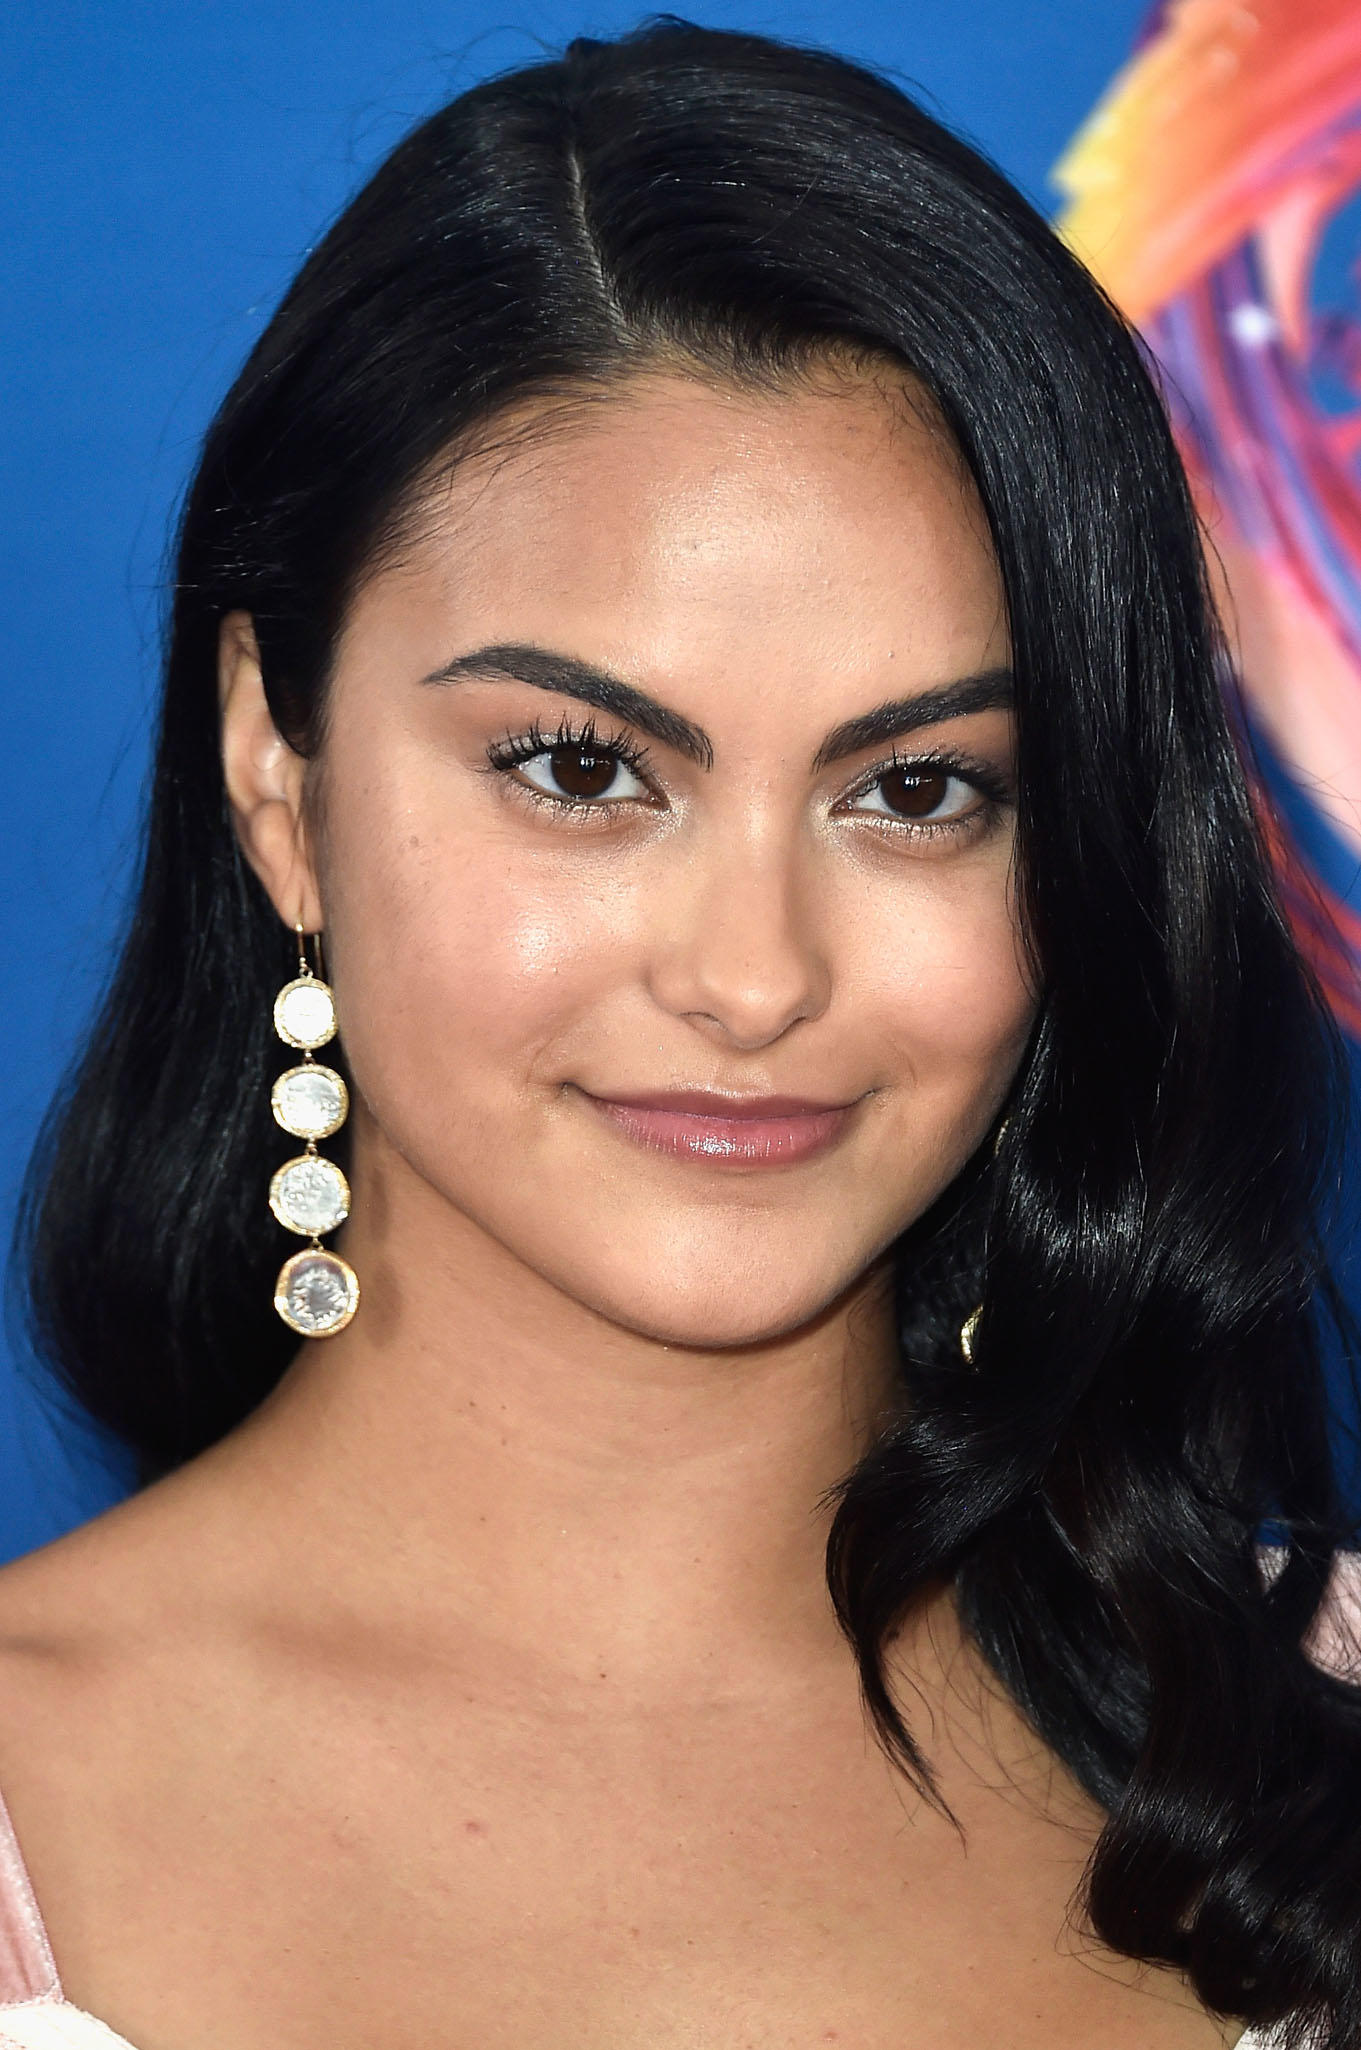 Camila Mendes at Fox's Teen Choice Awards 2018 in Inglewood, California.